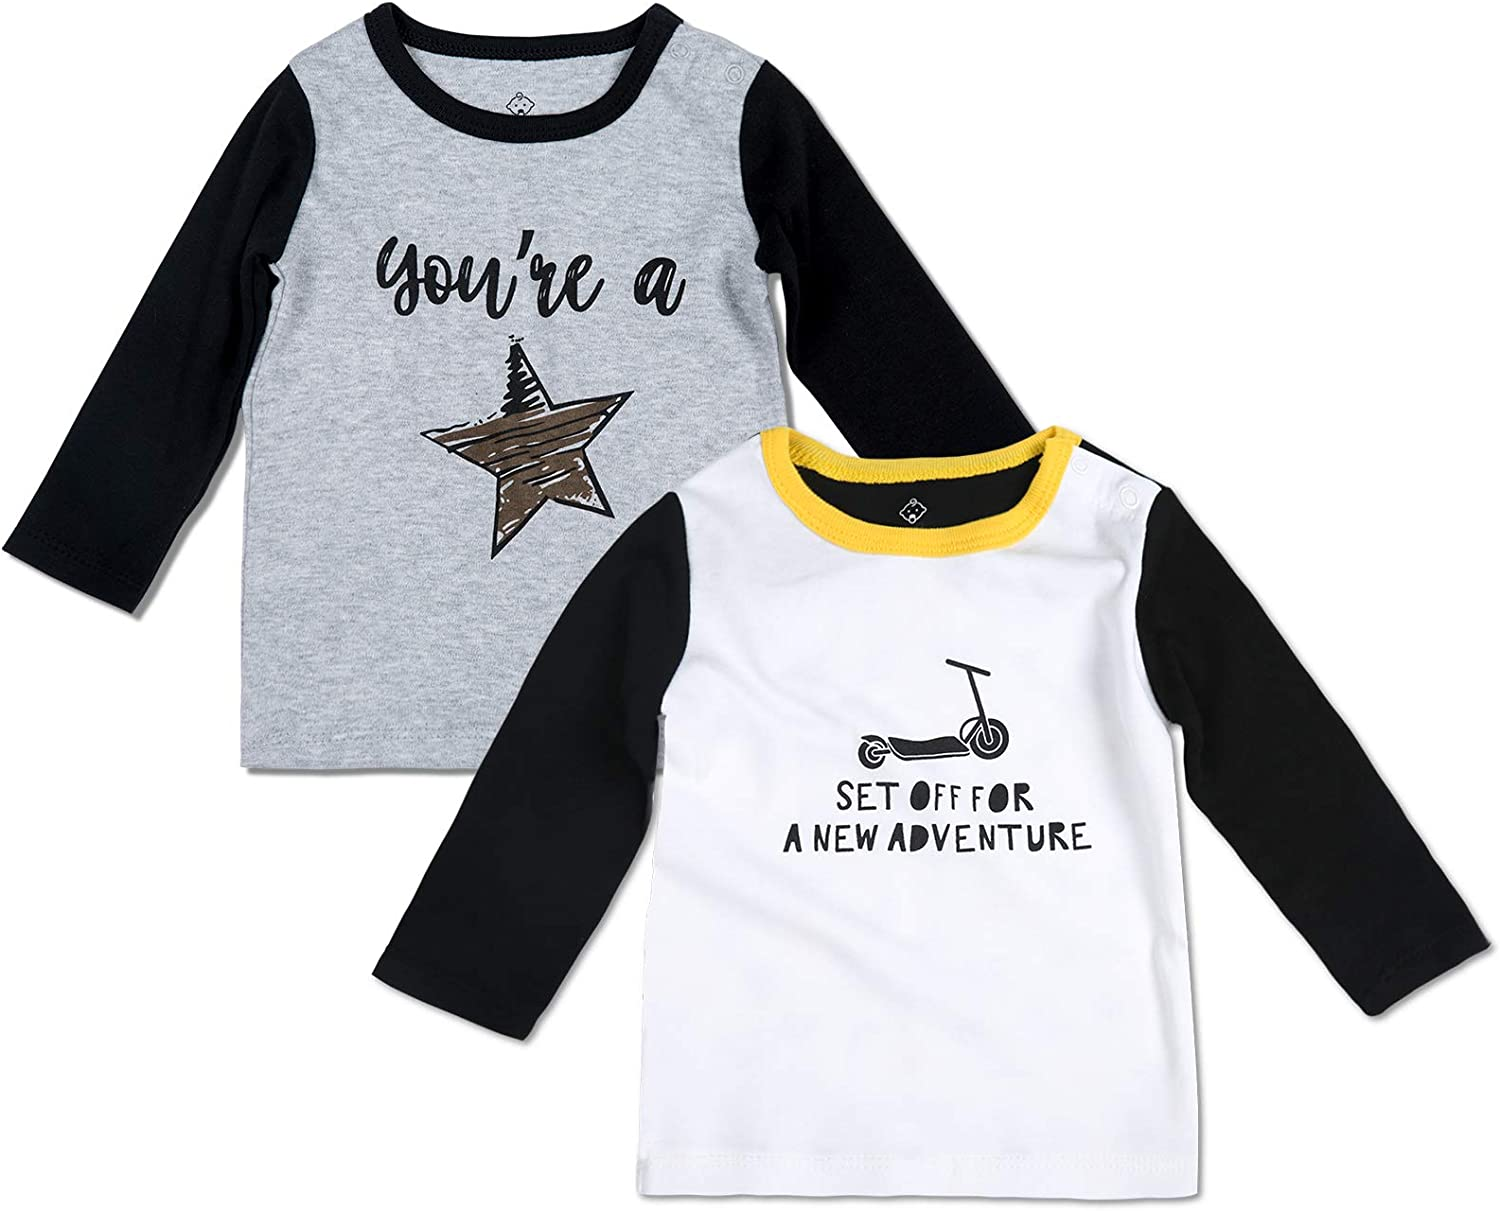 DEFAHN Toddler Baby Gril Boy T-Shirt Girls Top Tee Long Sleeve Graphic Shirts Blouse 2 Pack Fall Clothes